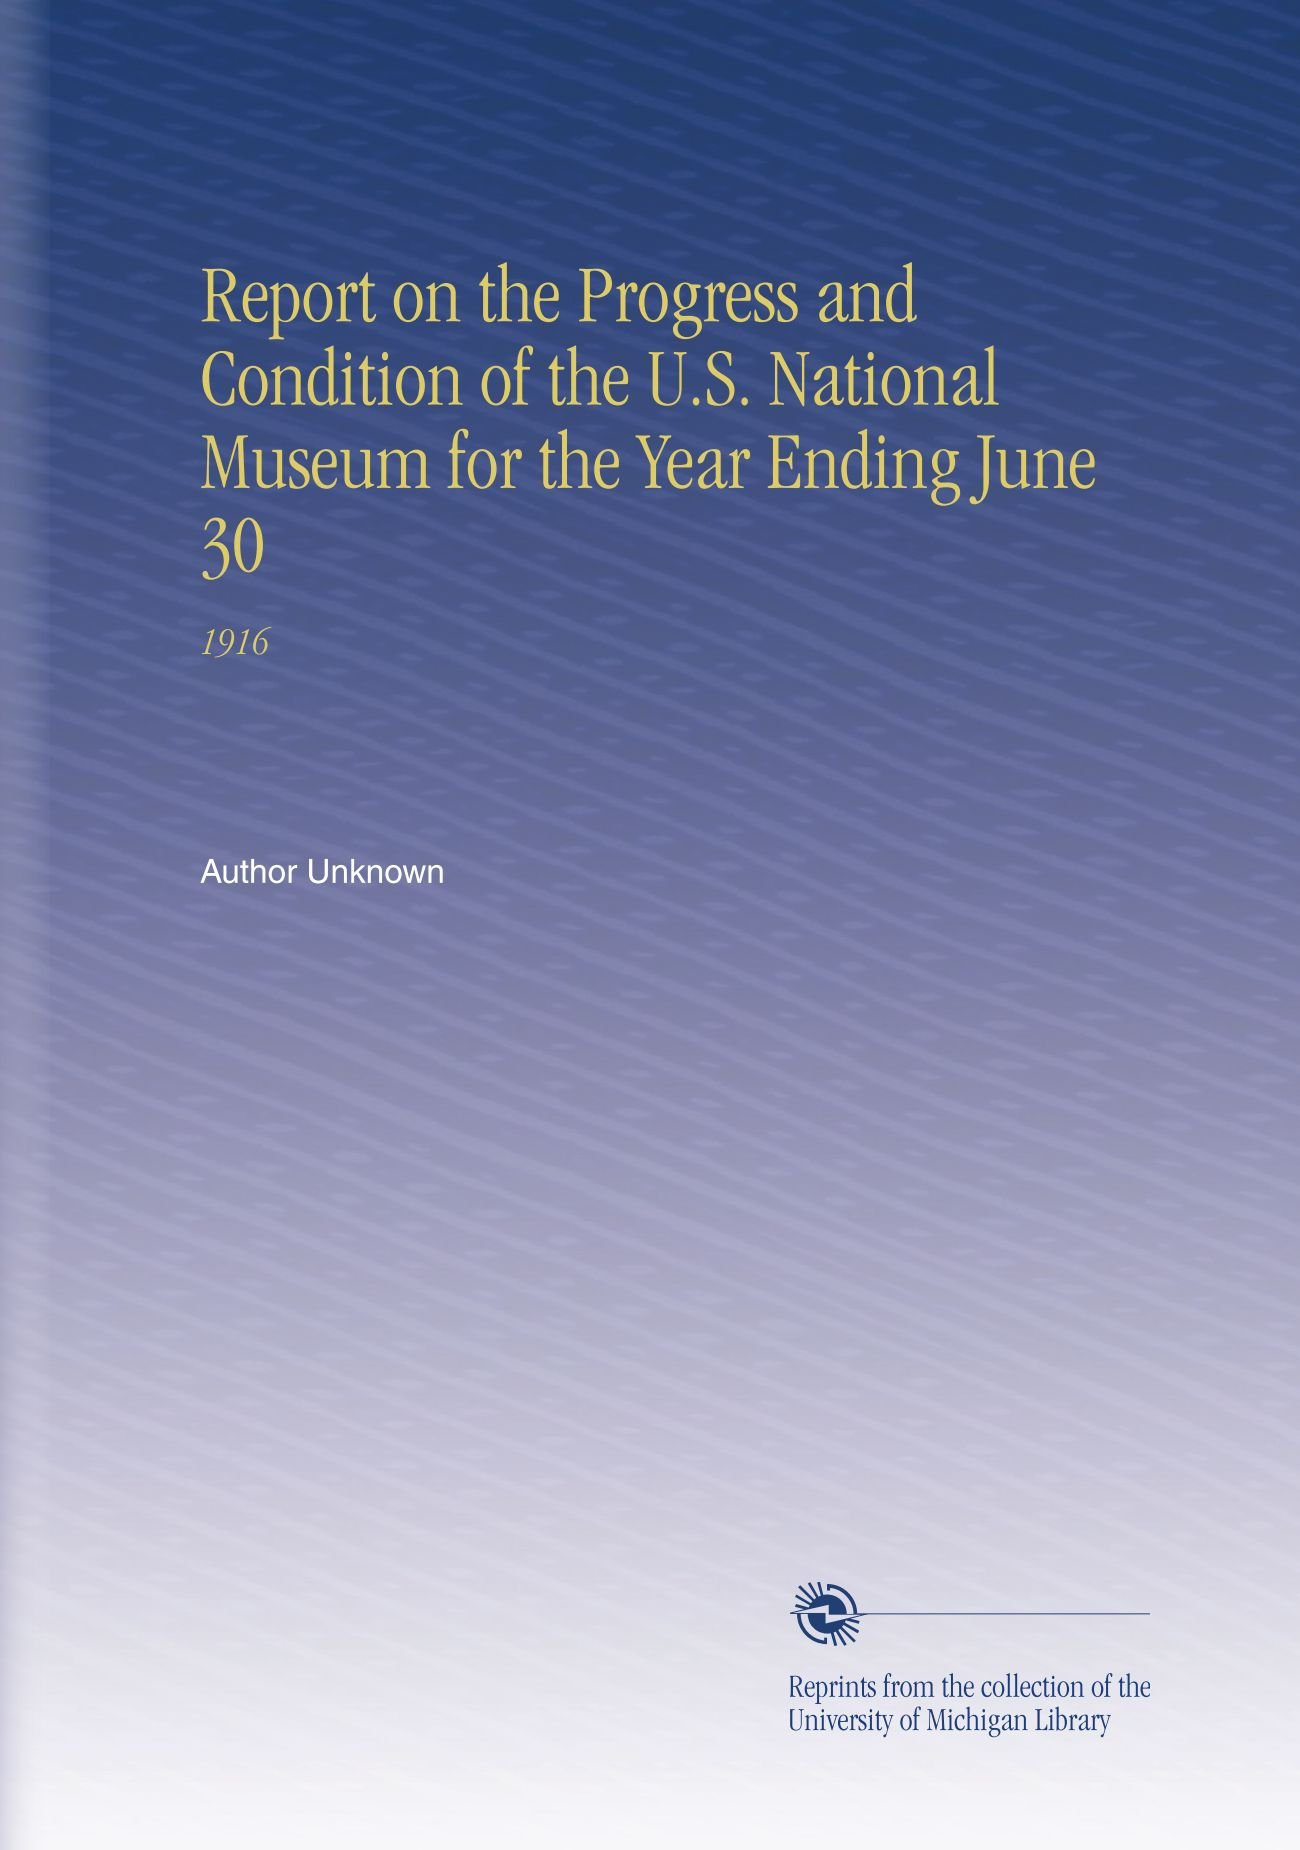 Download Report on the Progress and Condition of the U.S. National Museum for the Year Ending June 30: 1916 PDF